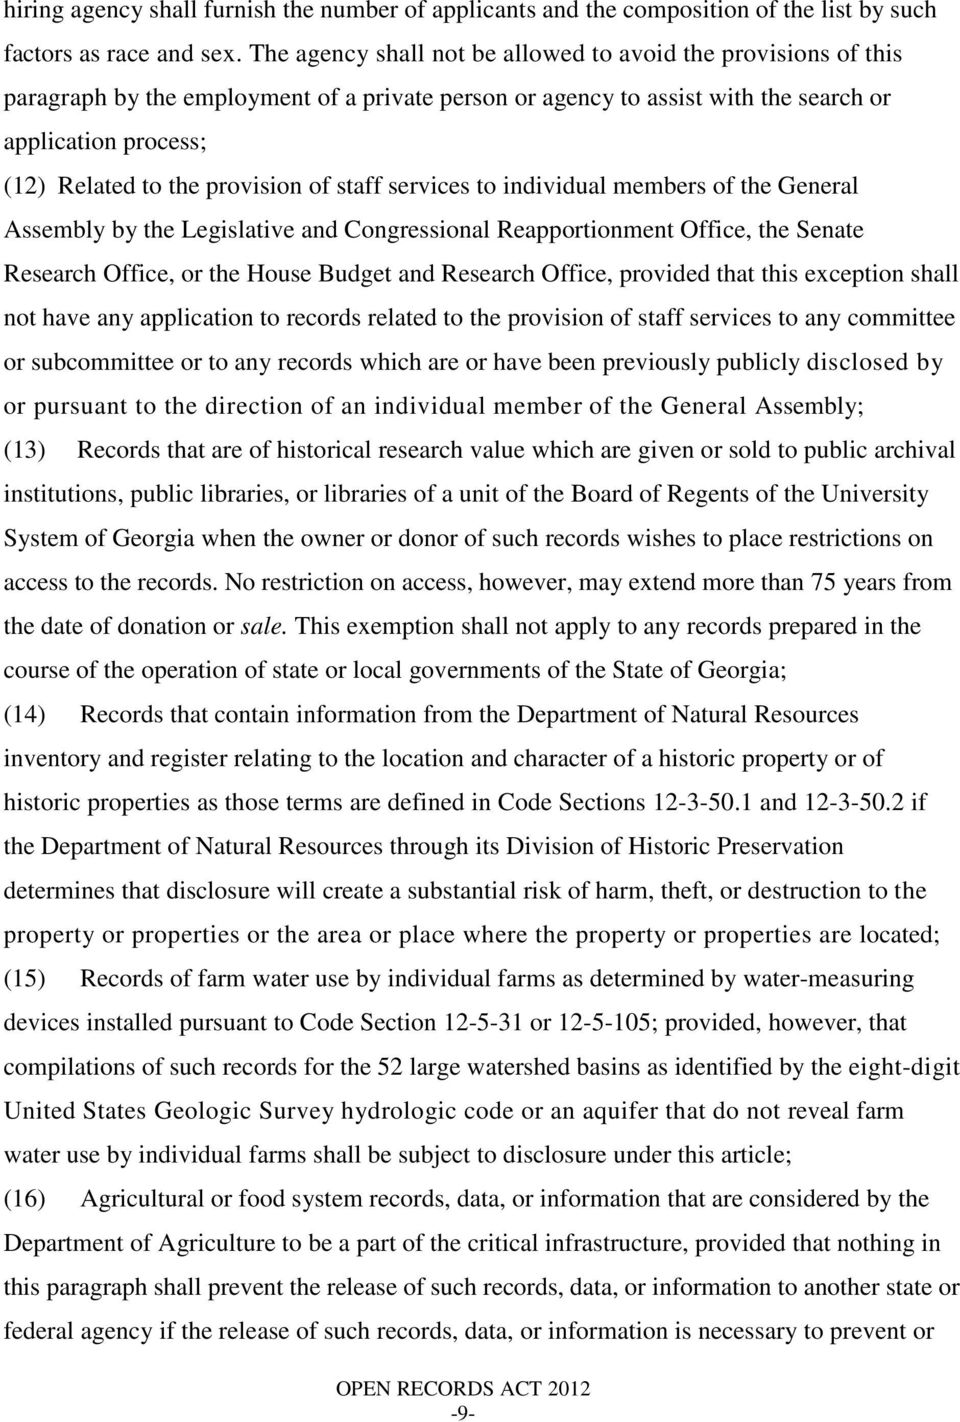 provision of staff services to individual members of the General Assembly by the Legislative and Congressional Reapportionment Office, the Senate Research Office, or the House Budget and Research